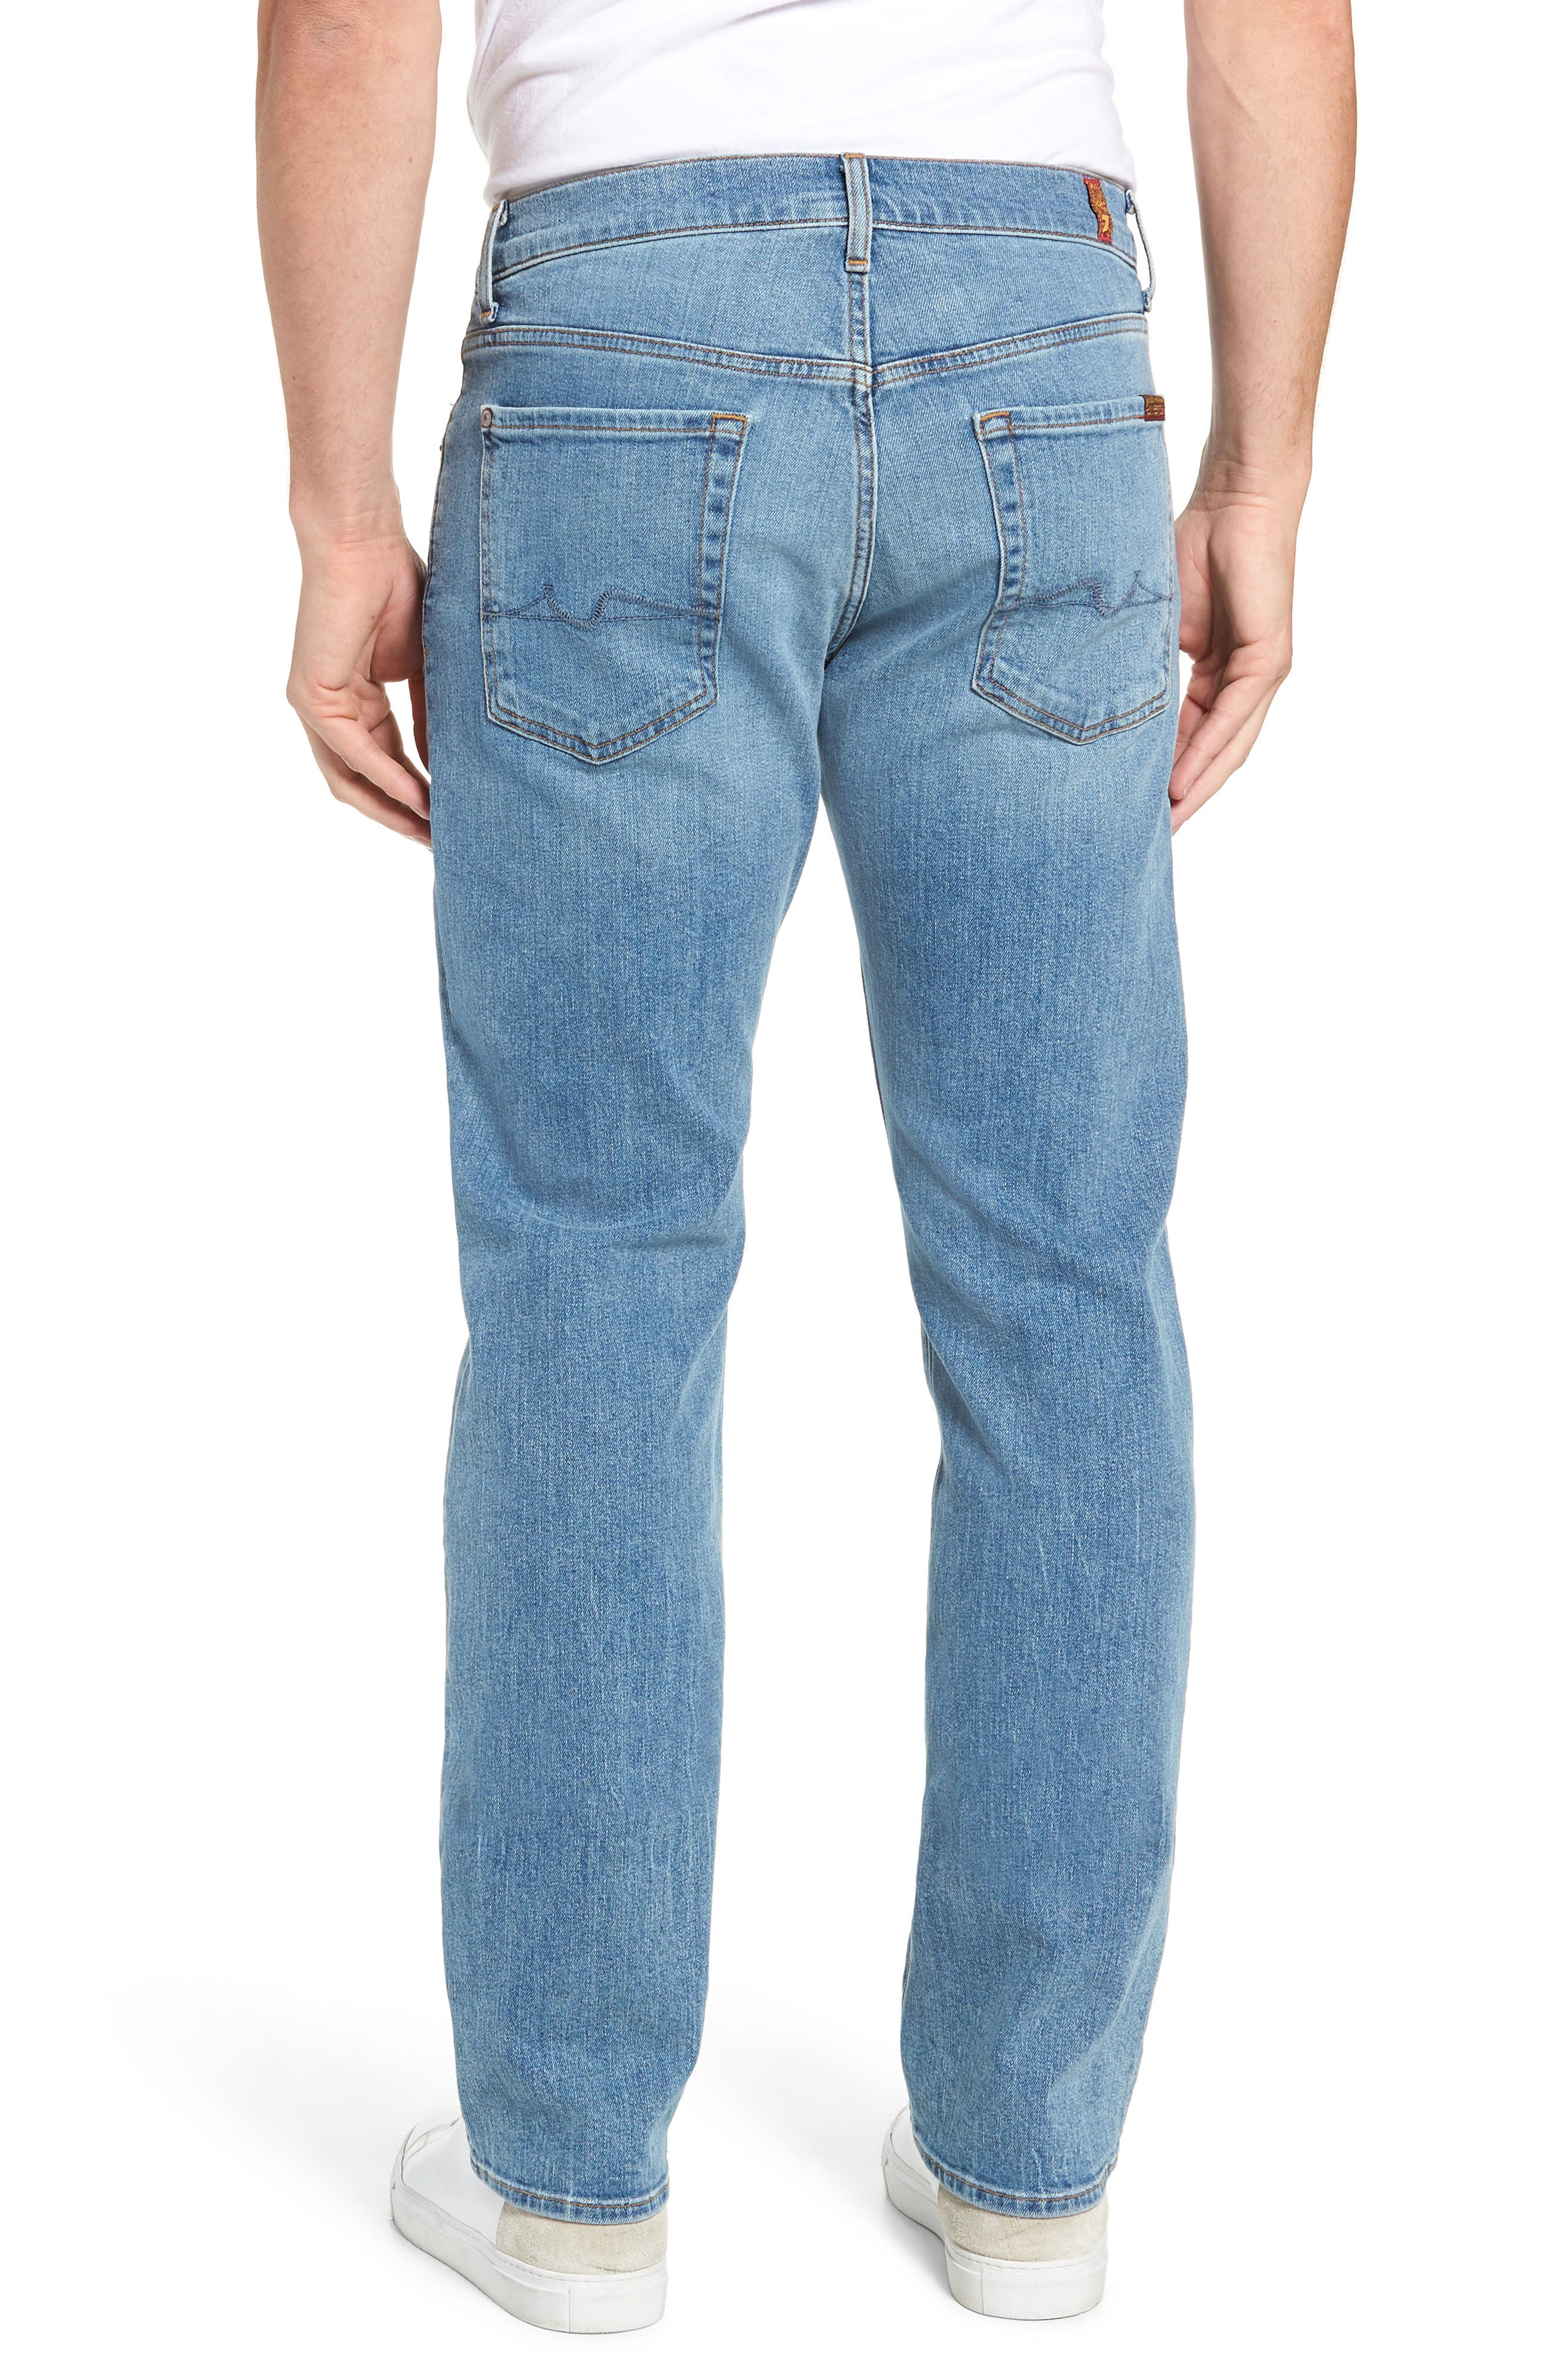 Austyn Relaxed Fit Jeans,                             Alternate thumbnail 2, color,                             PROSE